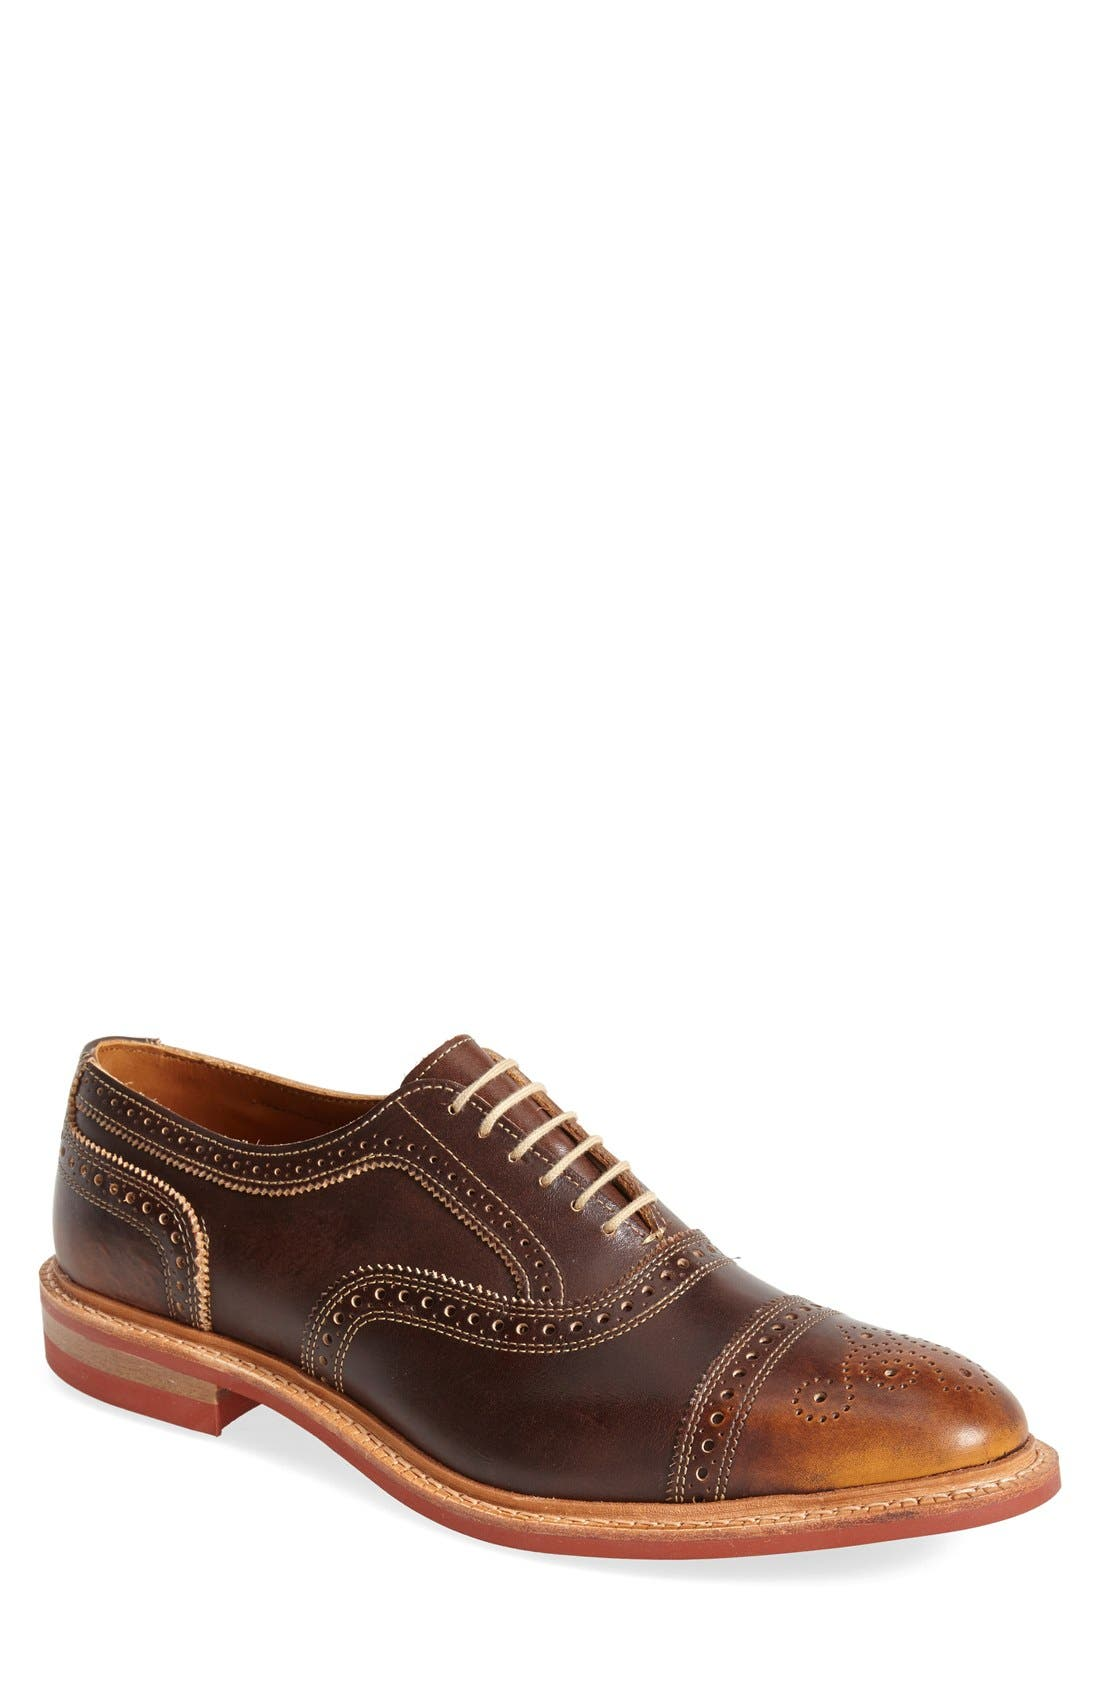 Allen Edmonds 'Strandmok' Cap Toe Oxford (Men)